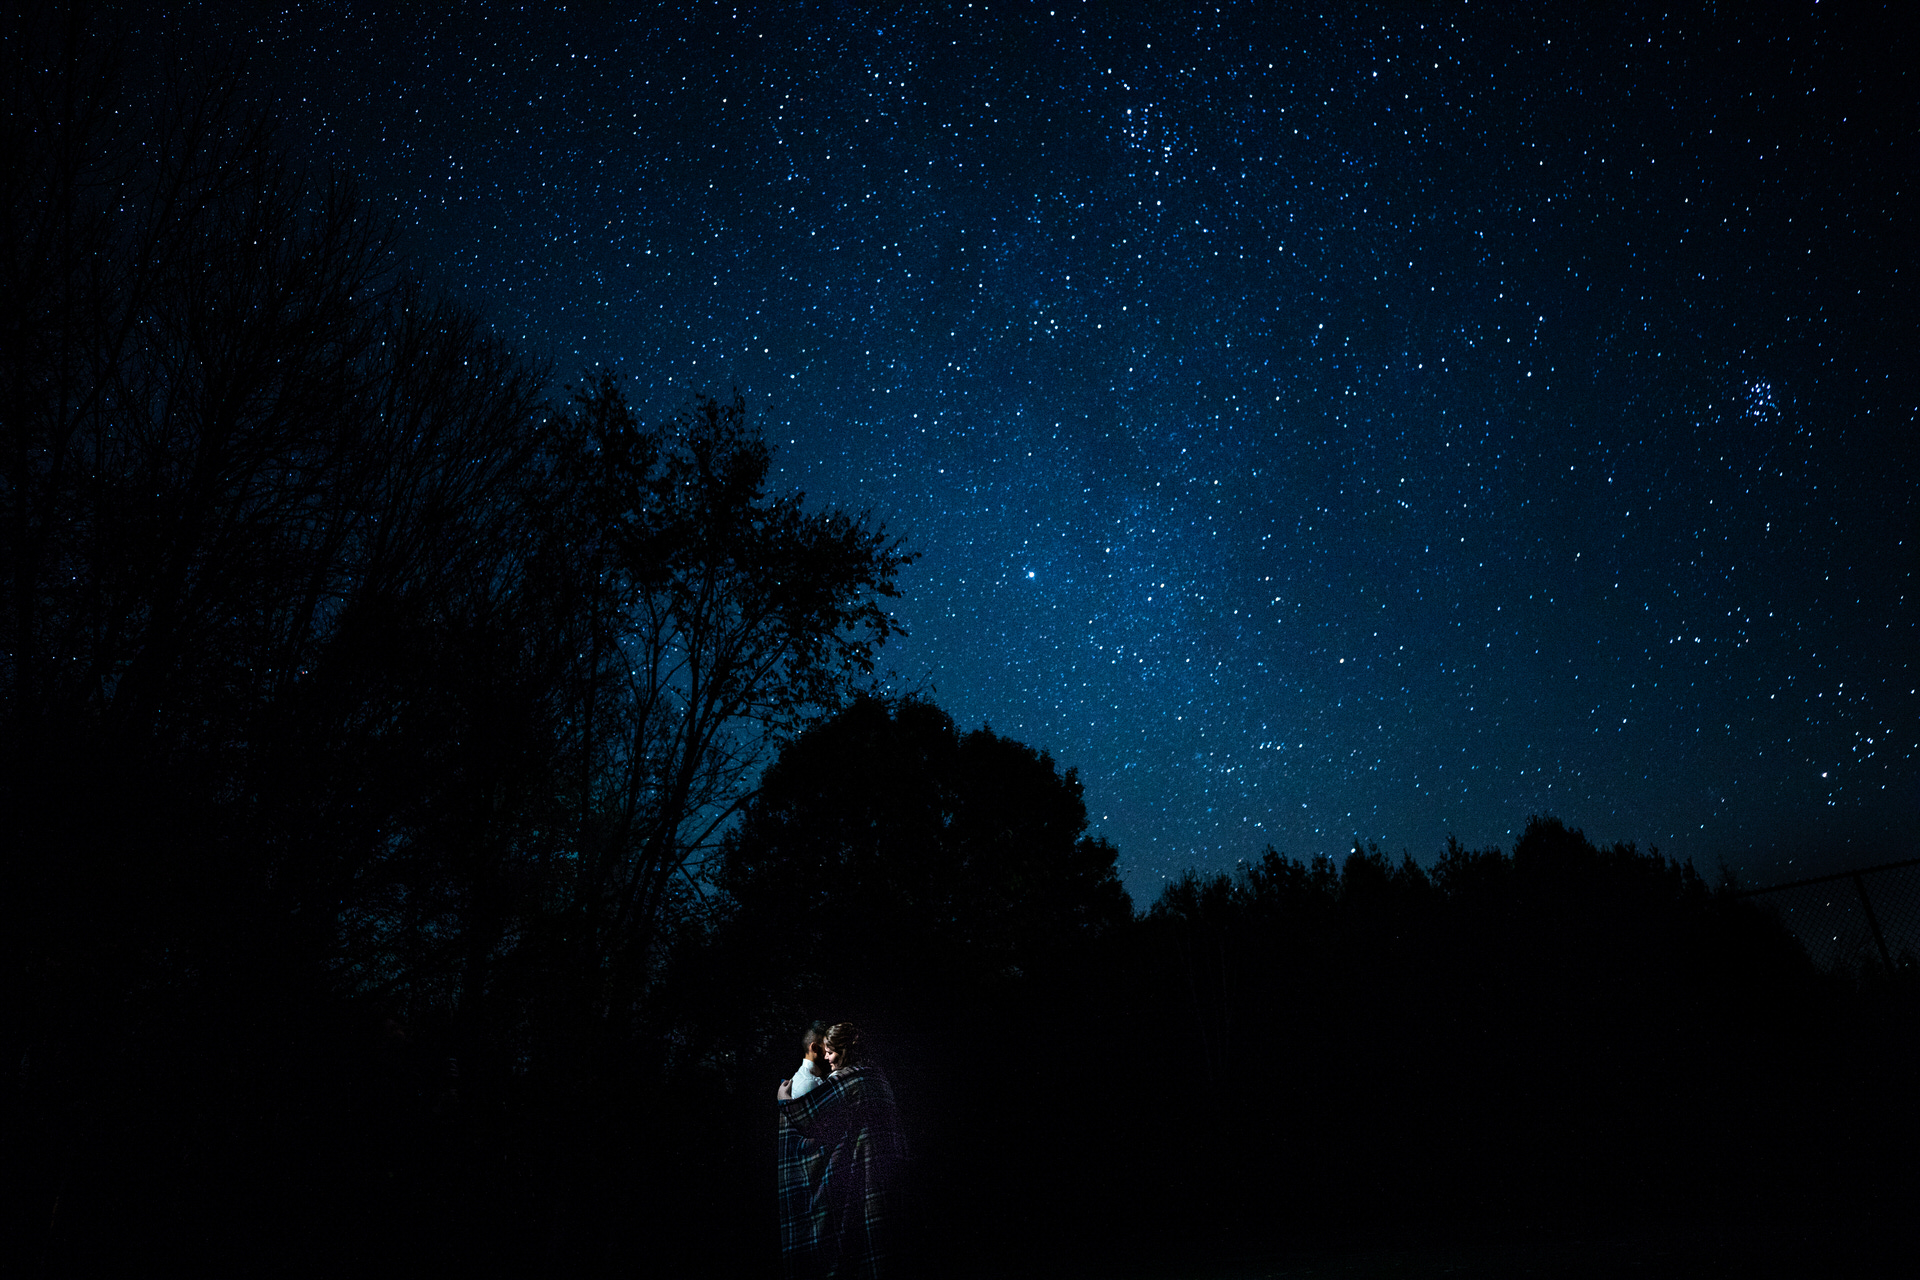 Balsam Lake, Wisconsin Small Wedding Portrait   End of the night shot with star-filled sky.